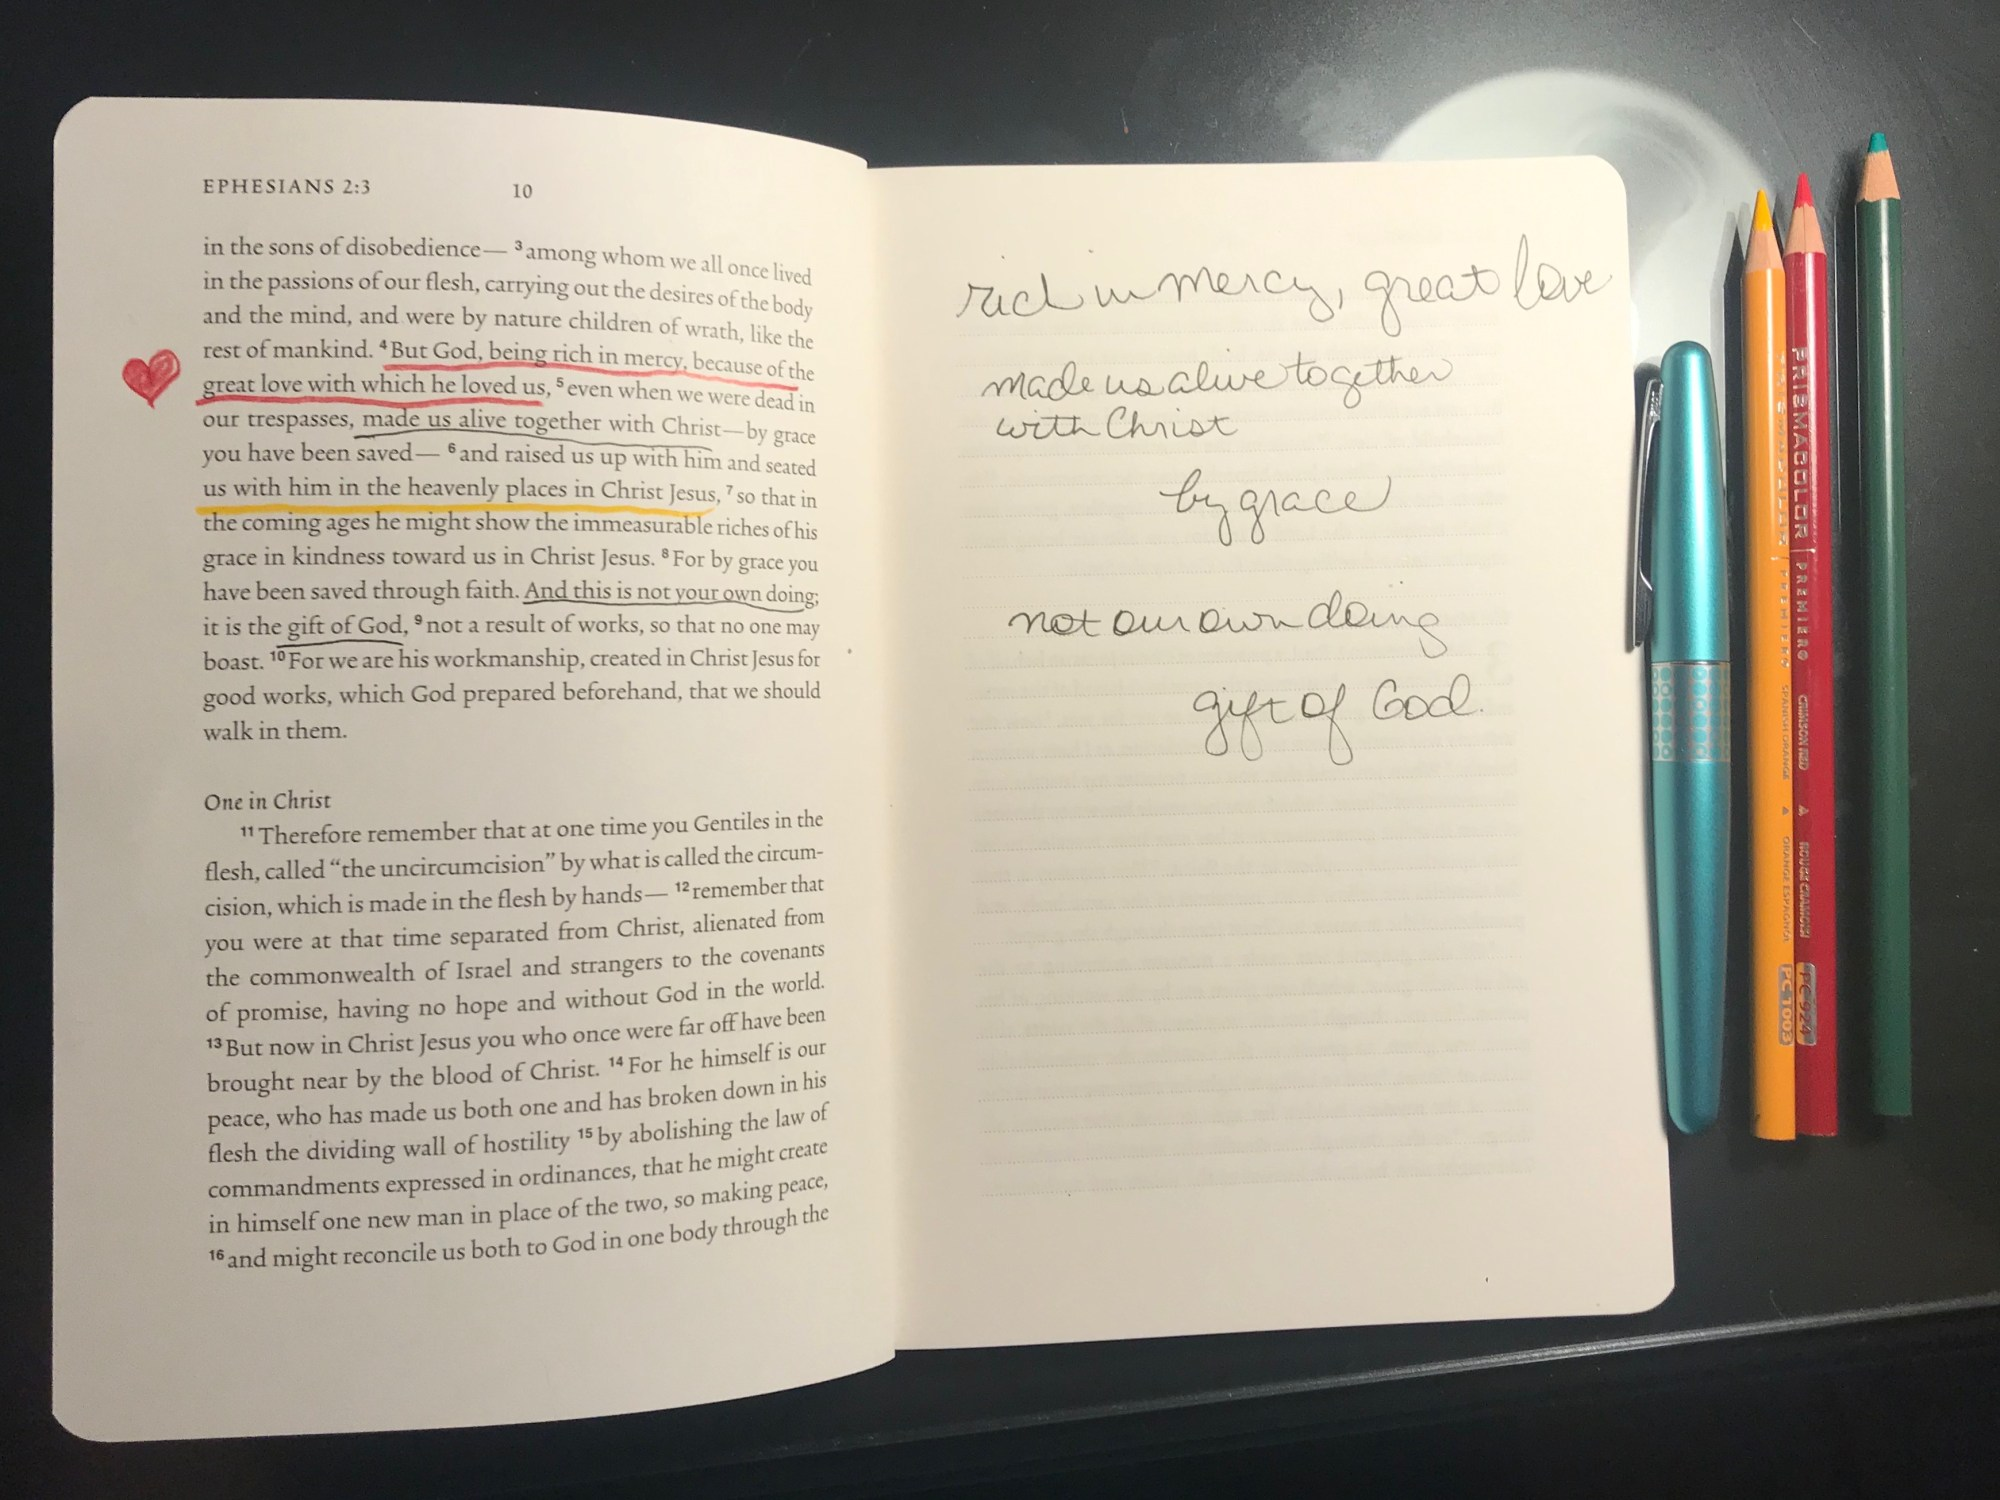 Crossway makes scripture journals with blank pages across from the text giving you freedom to underline, draw, and capture insights.